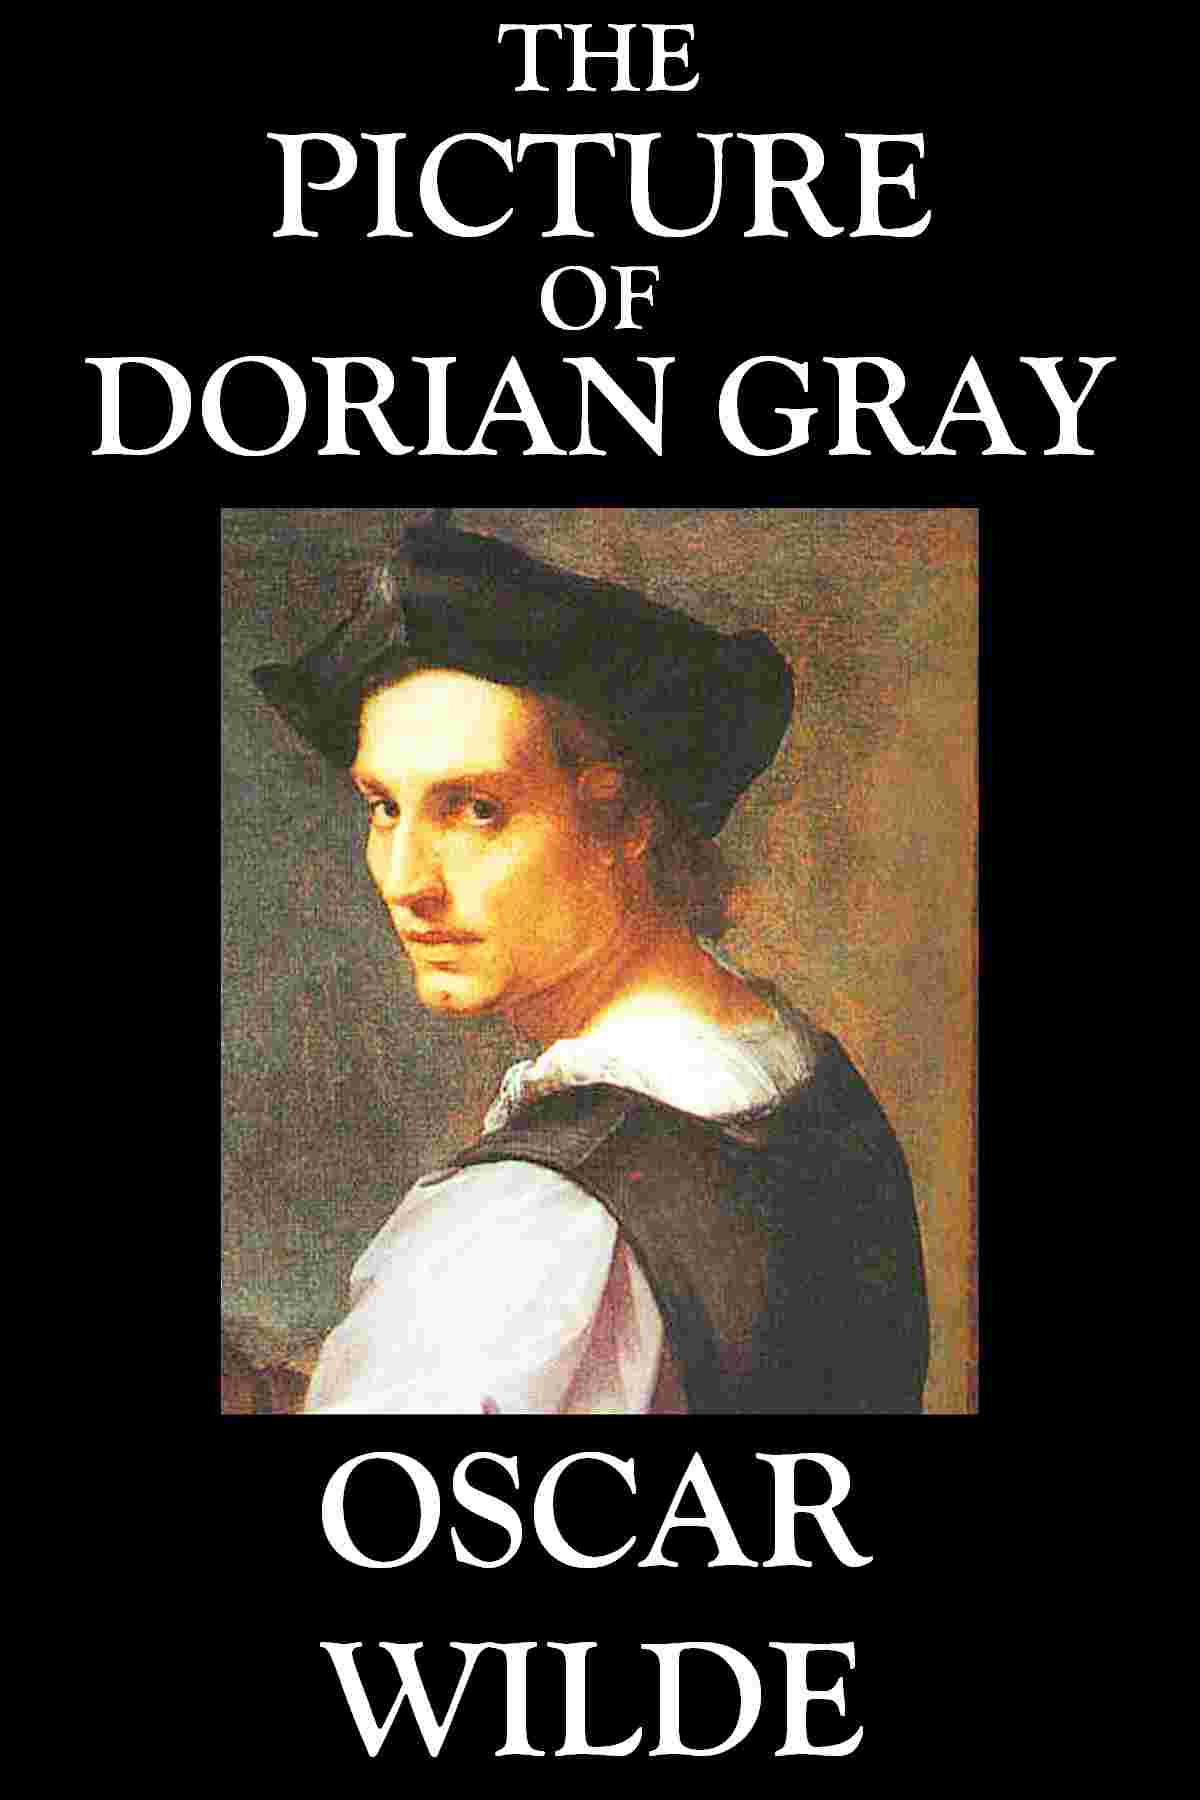 influences oscar wilde picture dorian gray By oscar wilde oscar wilde, author of the picture of dorian gray, makes basil's life change drastically by having him paint a portrait of dorian gray and express.